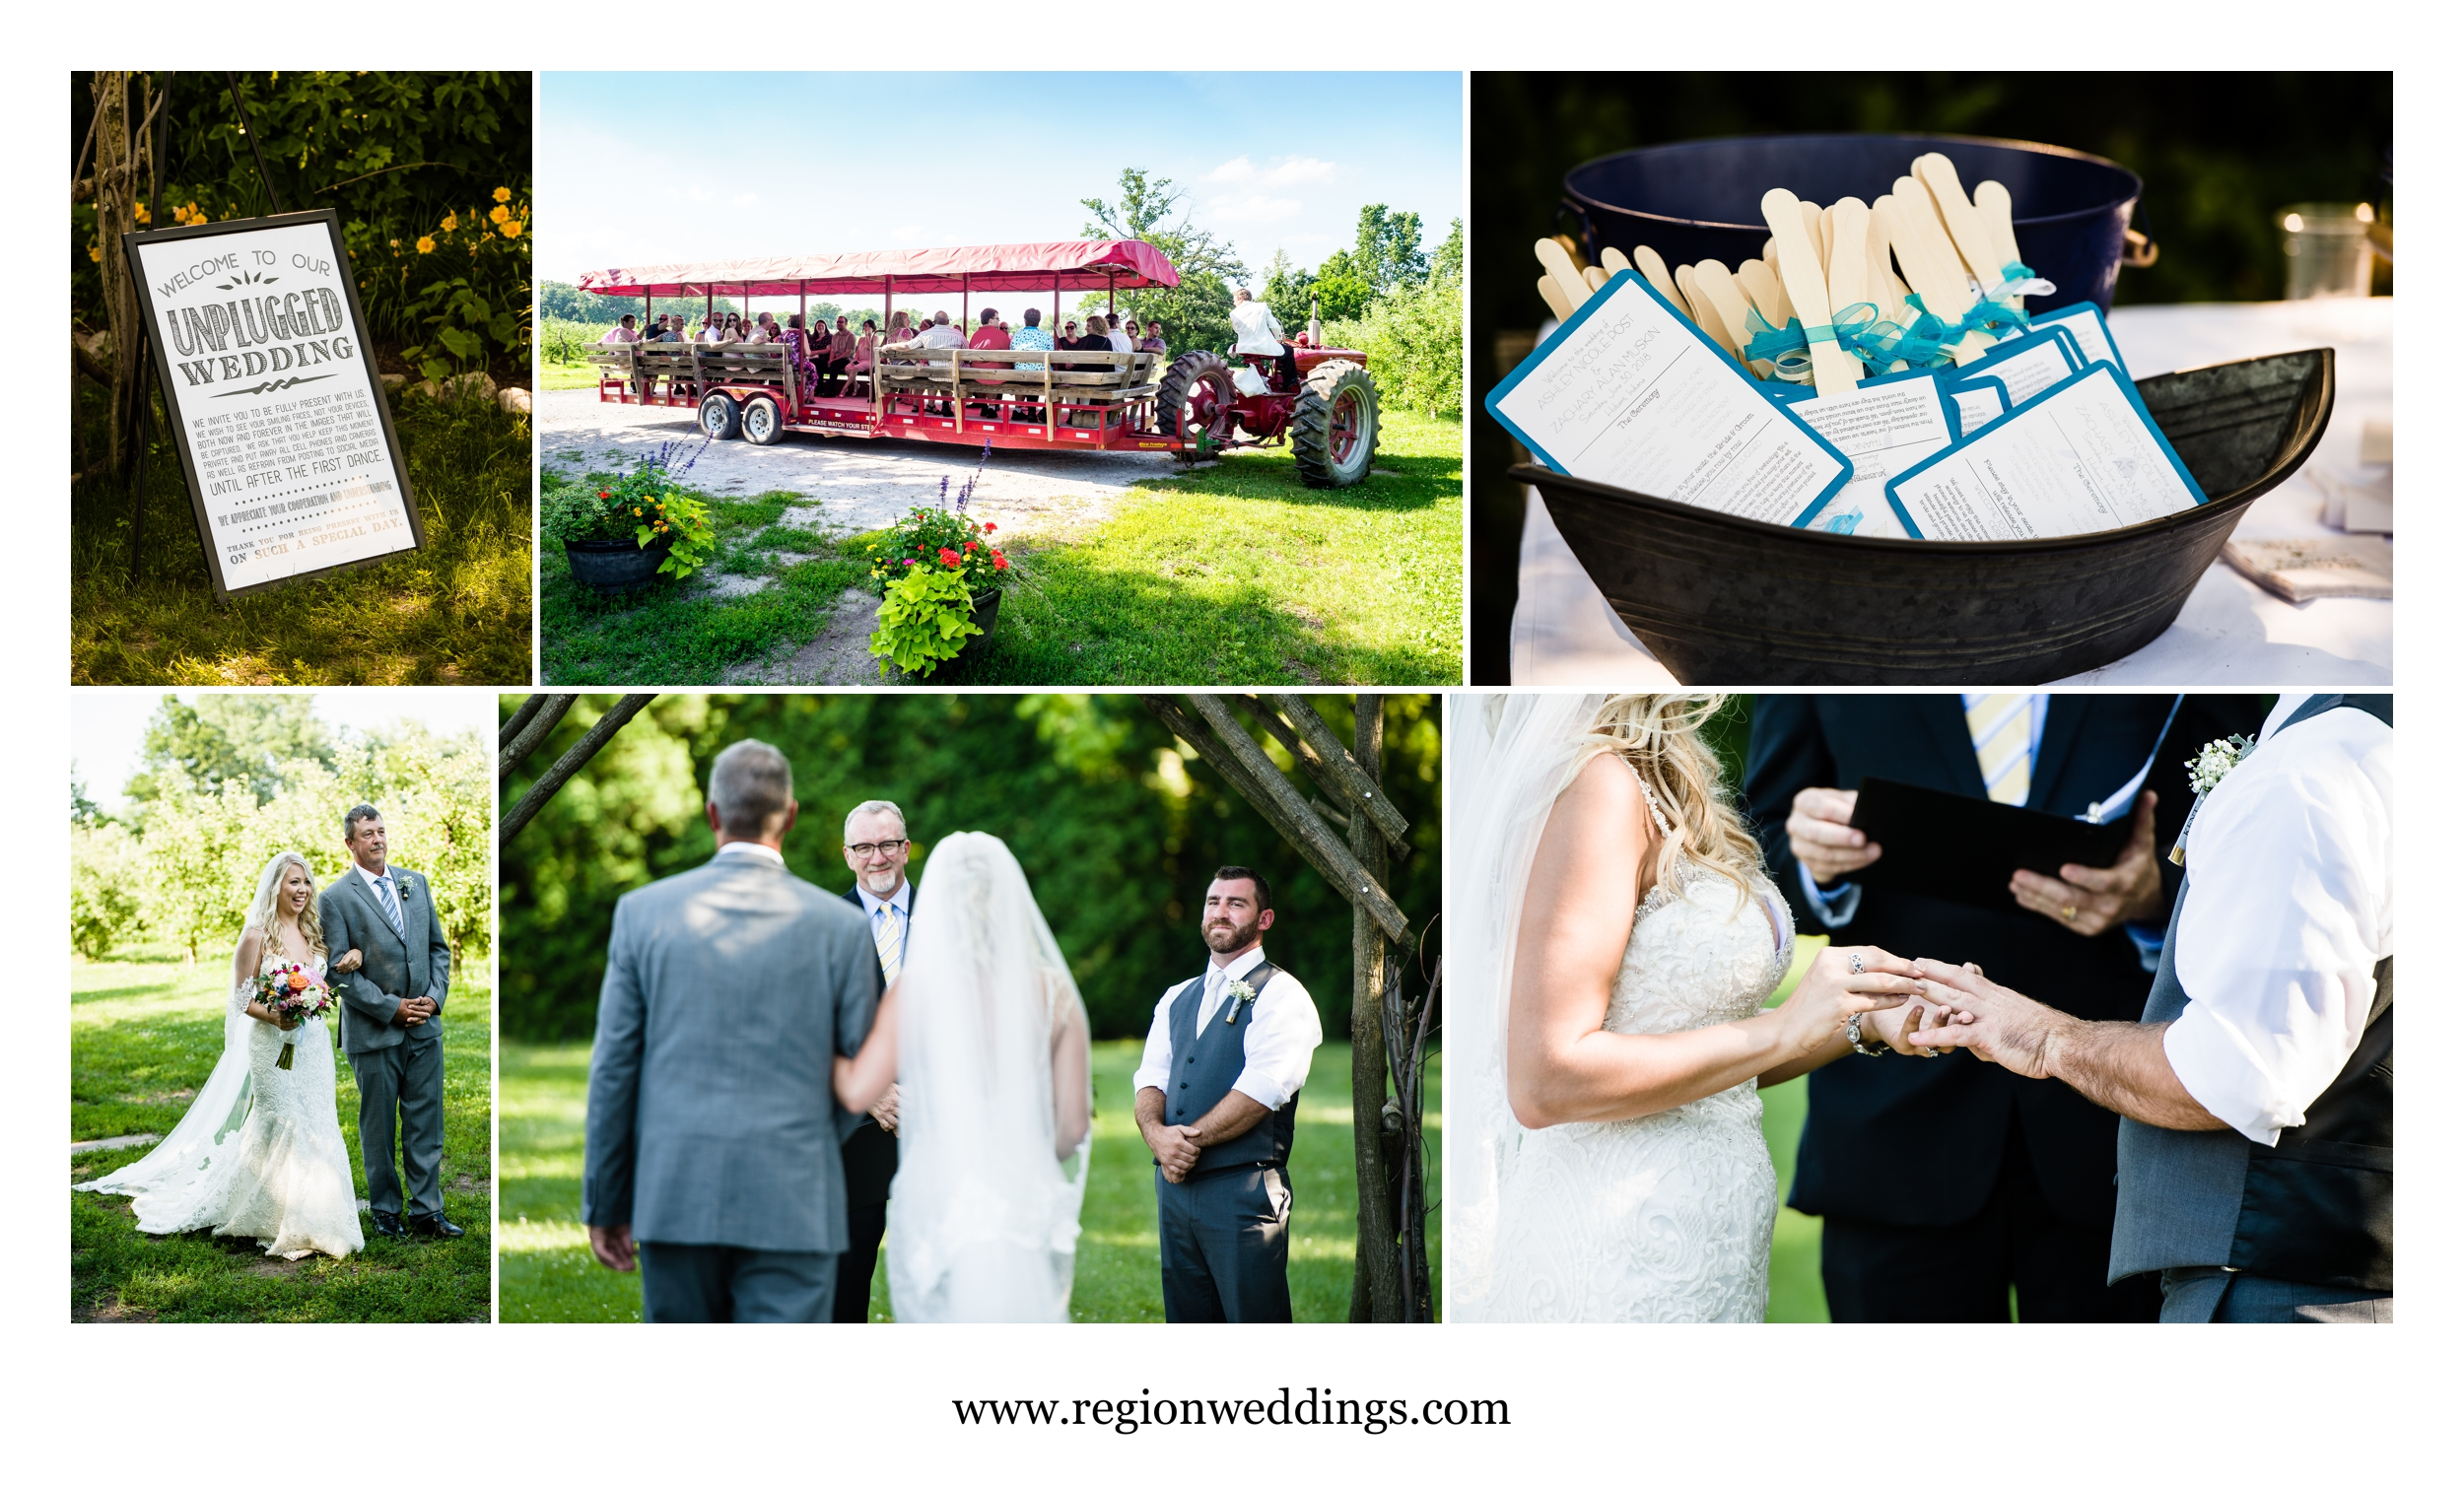 Outdoor wedding at County Line Orchard.